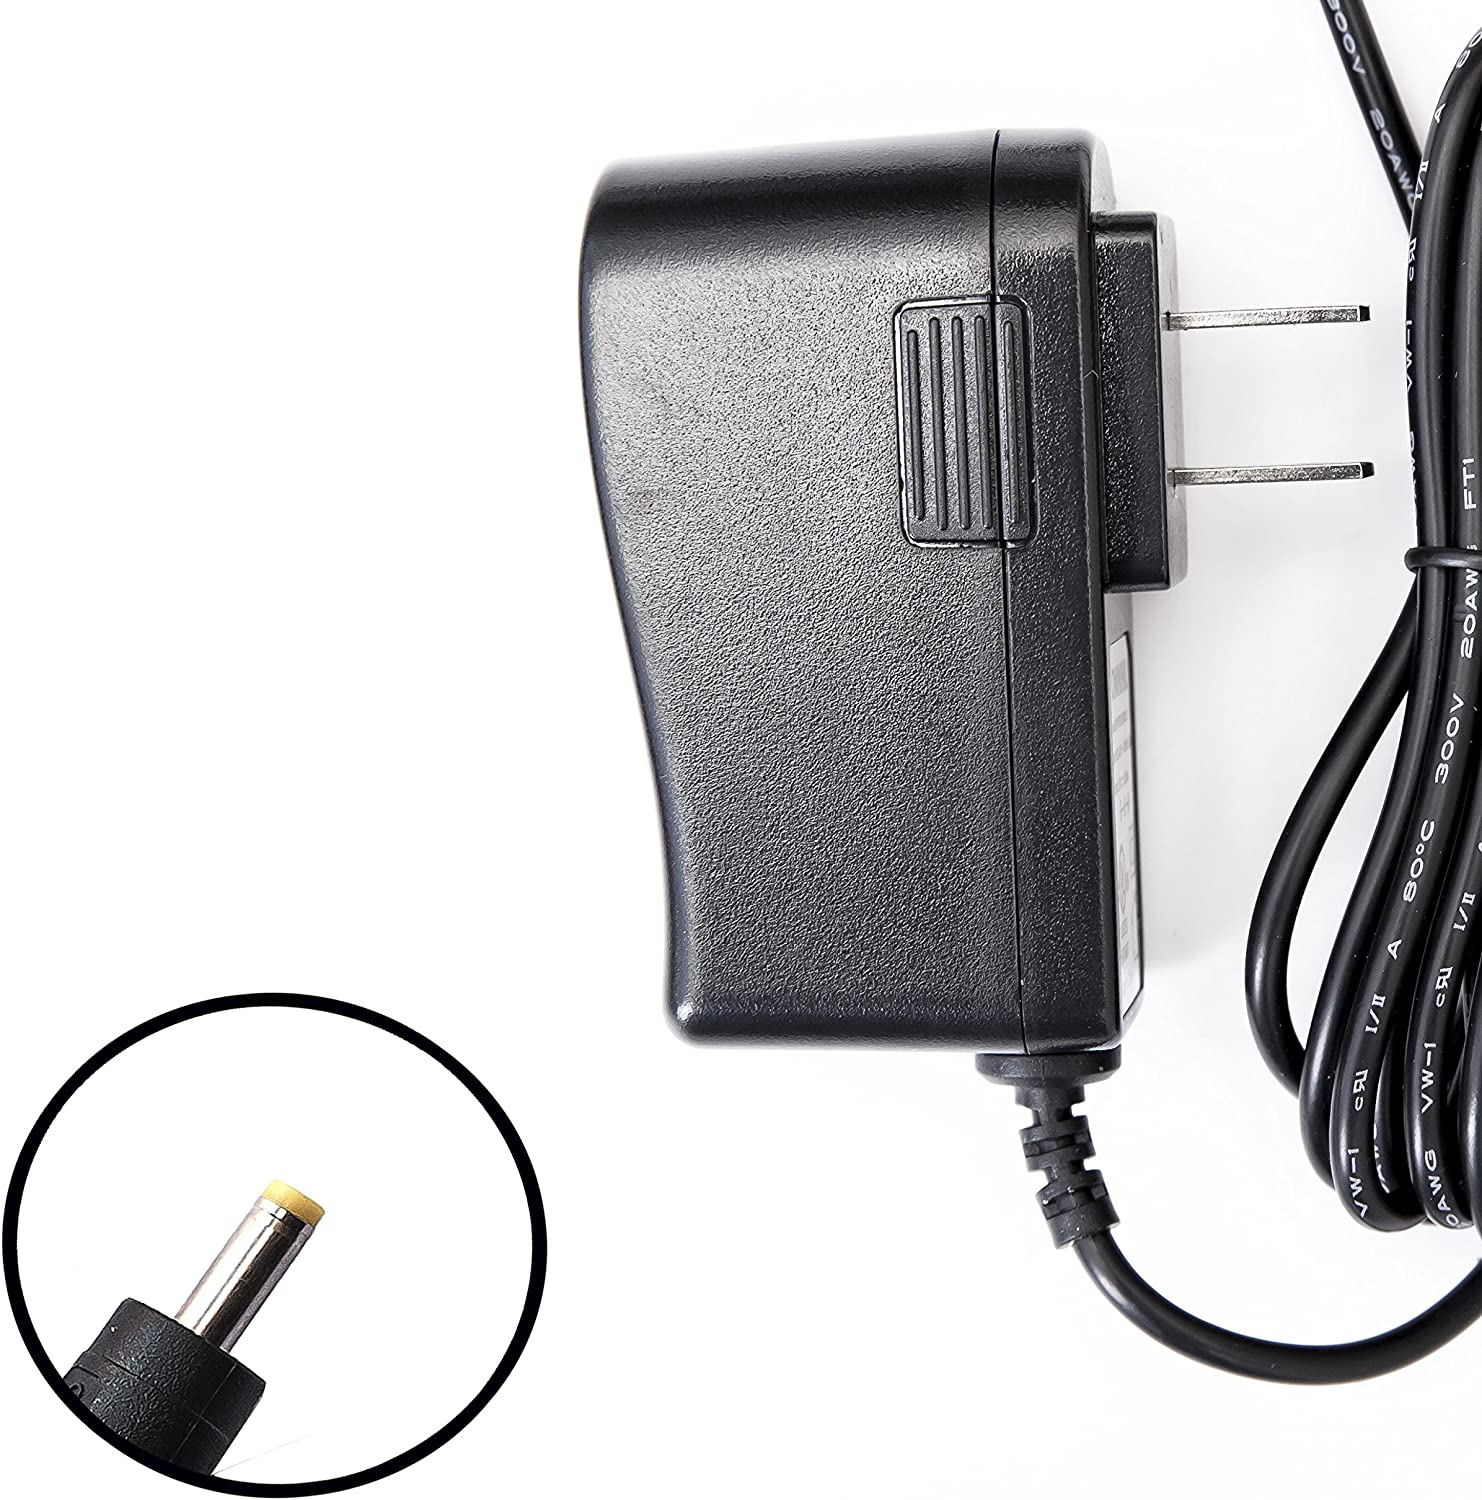 SDR-S7EF SDR-S7EG Cable PS Wall Home Charger Compatible with Replacement Part SDR-S7EE SDR-S7E Omnihil AC //DC Power Adapter Compatible with Panasonic Digital Camera SDR-S7 SDR-S7EB